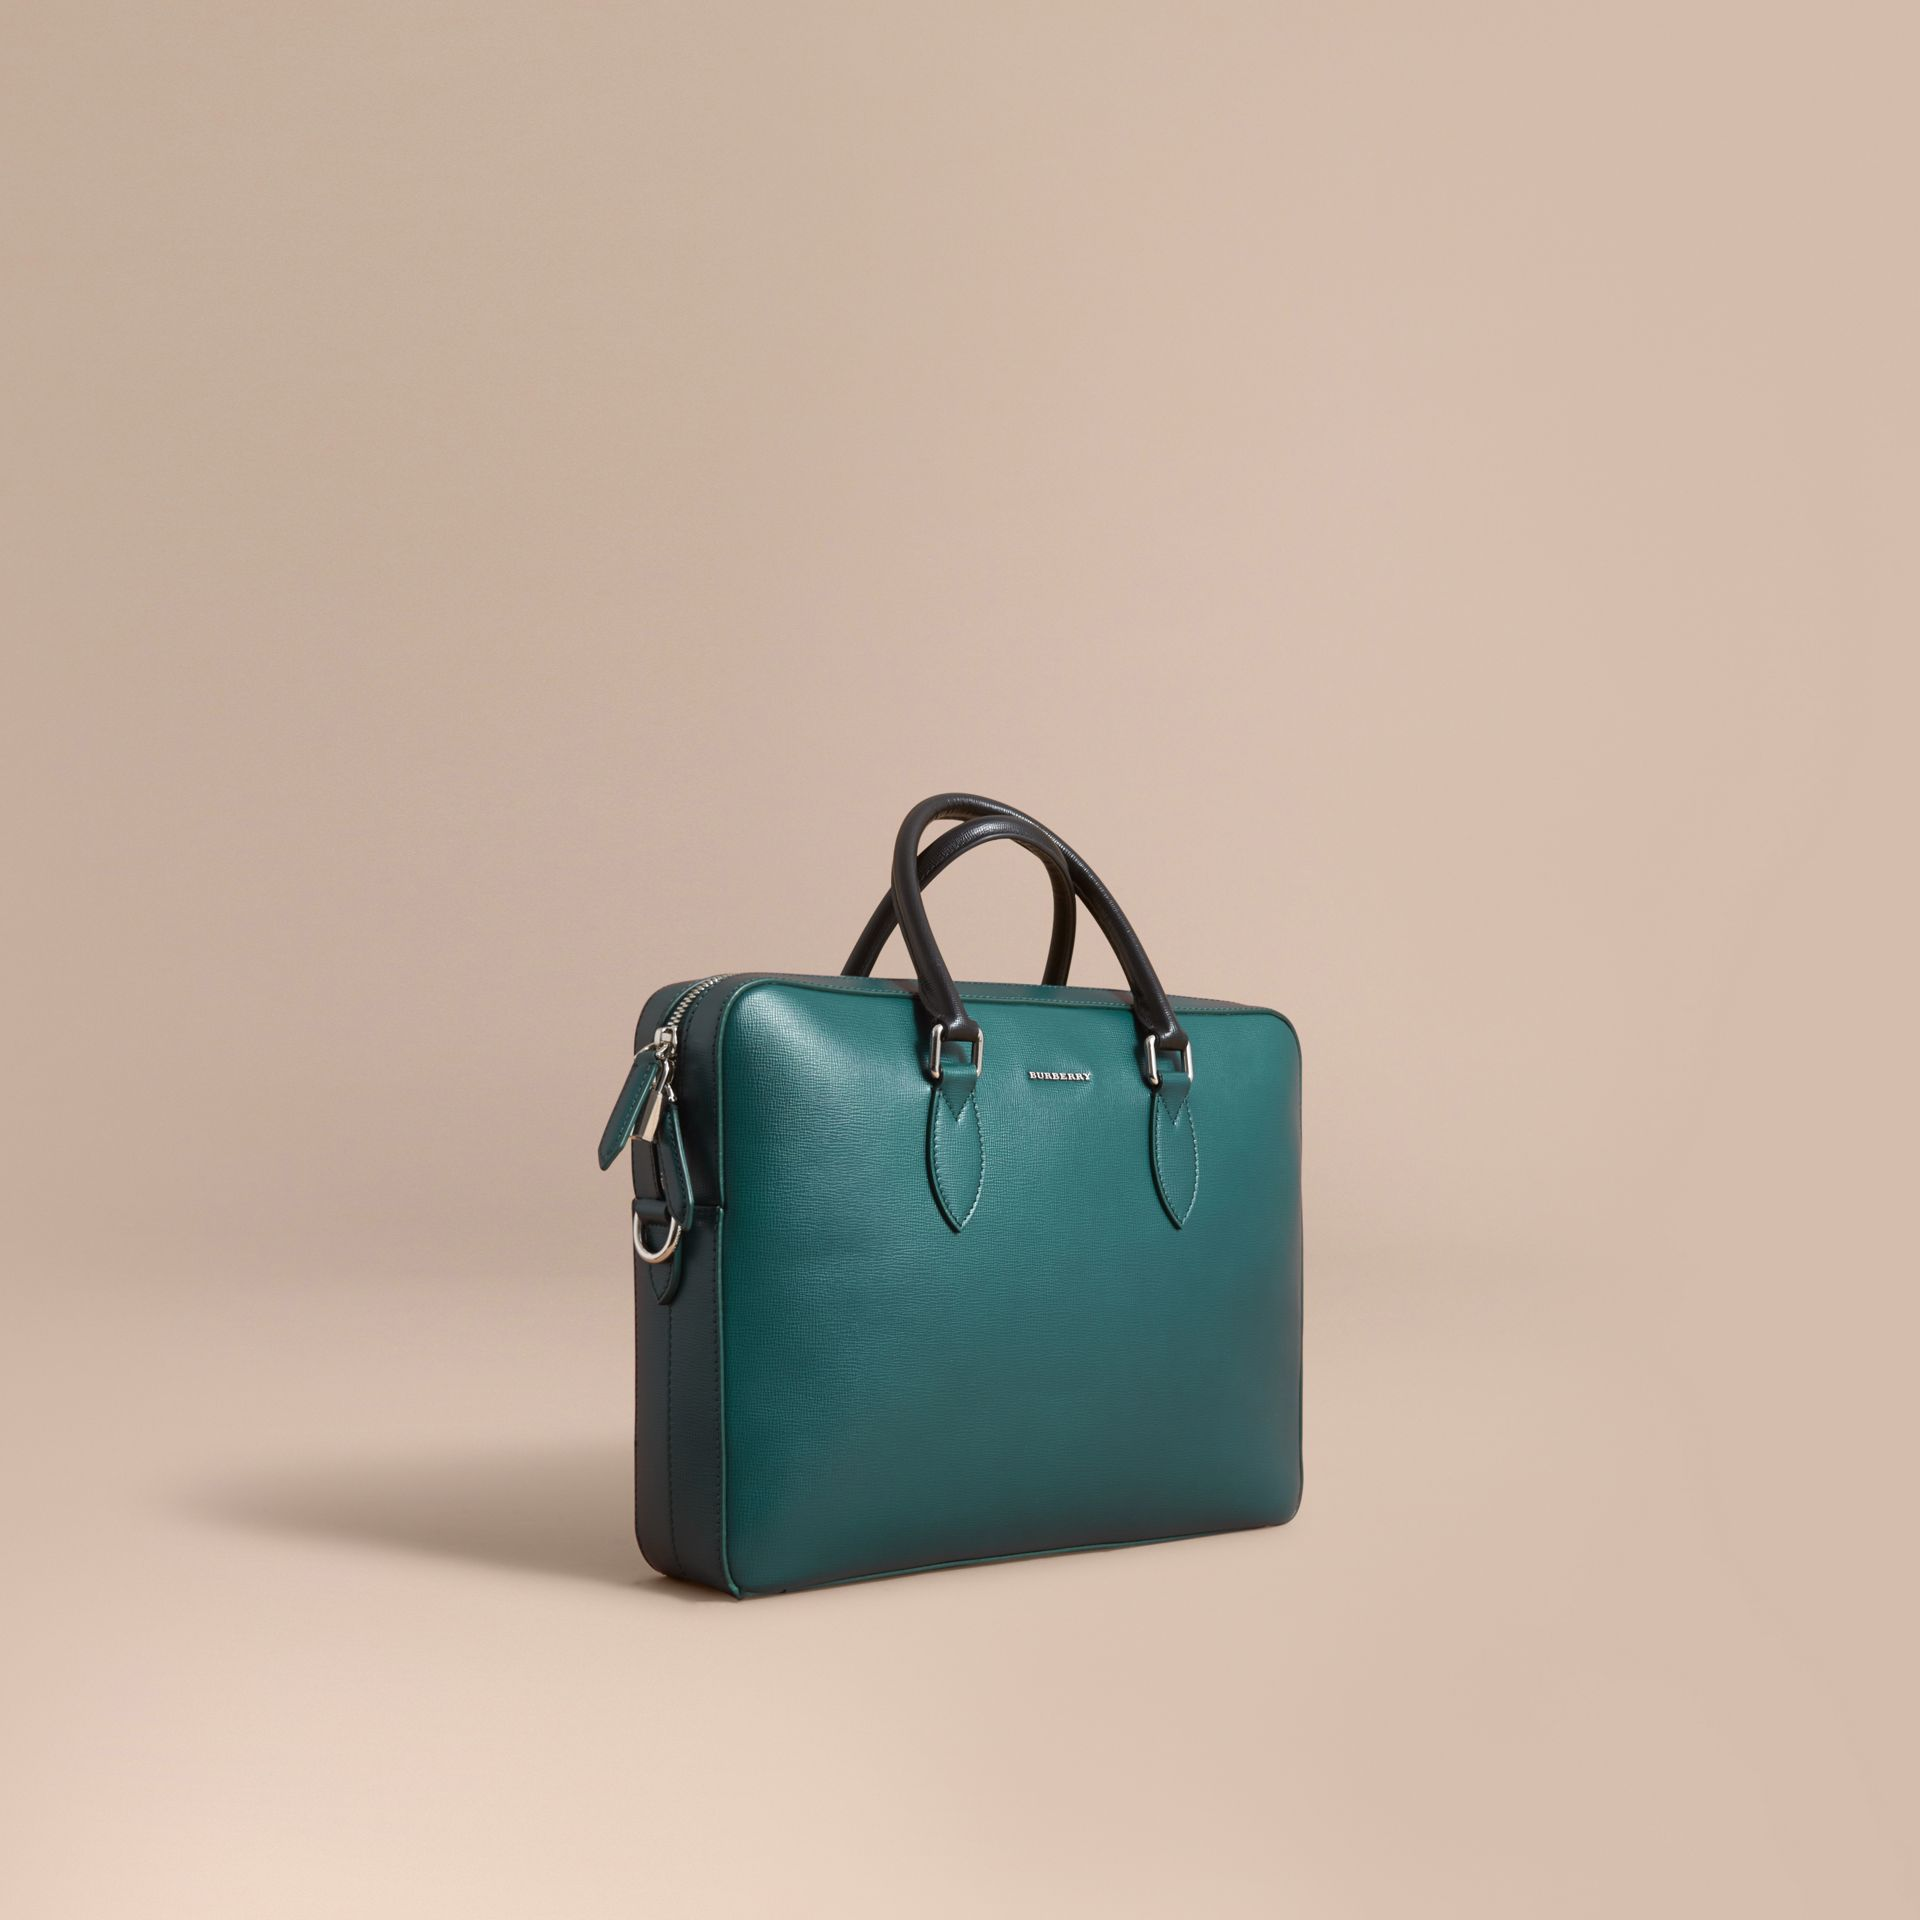 London Leather Briefcase in Dark Teal/black - Men | Burberry Hong Kong - gallery image 1